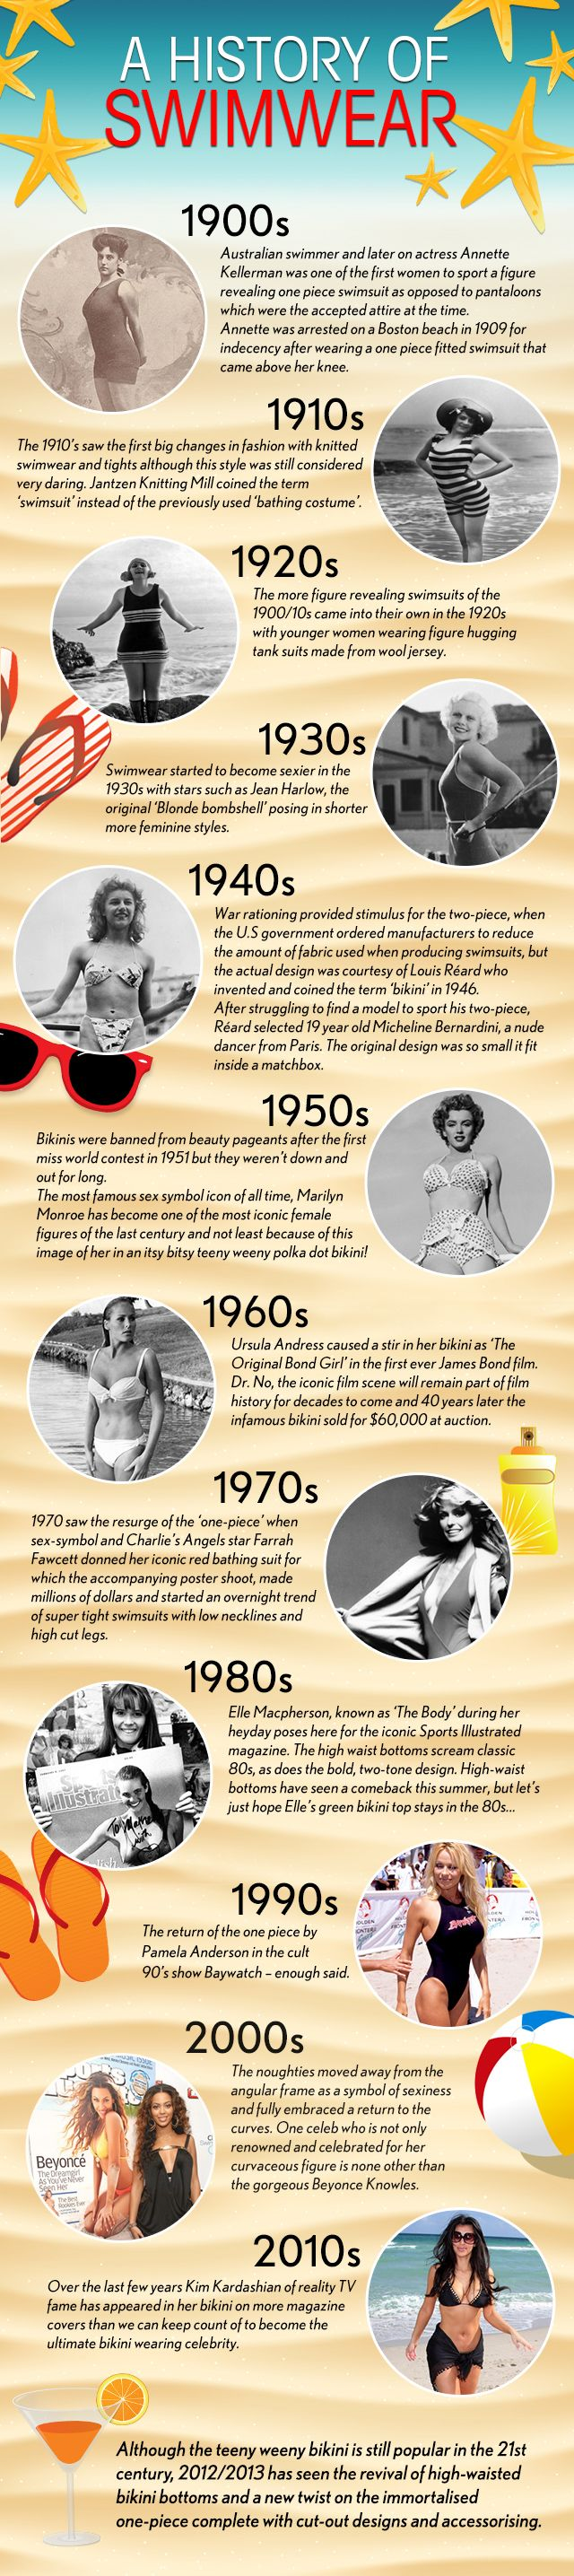 Swimwear 365 takes a look through time to see how the swimsuit has evolved over the years.